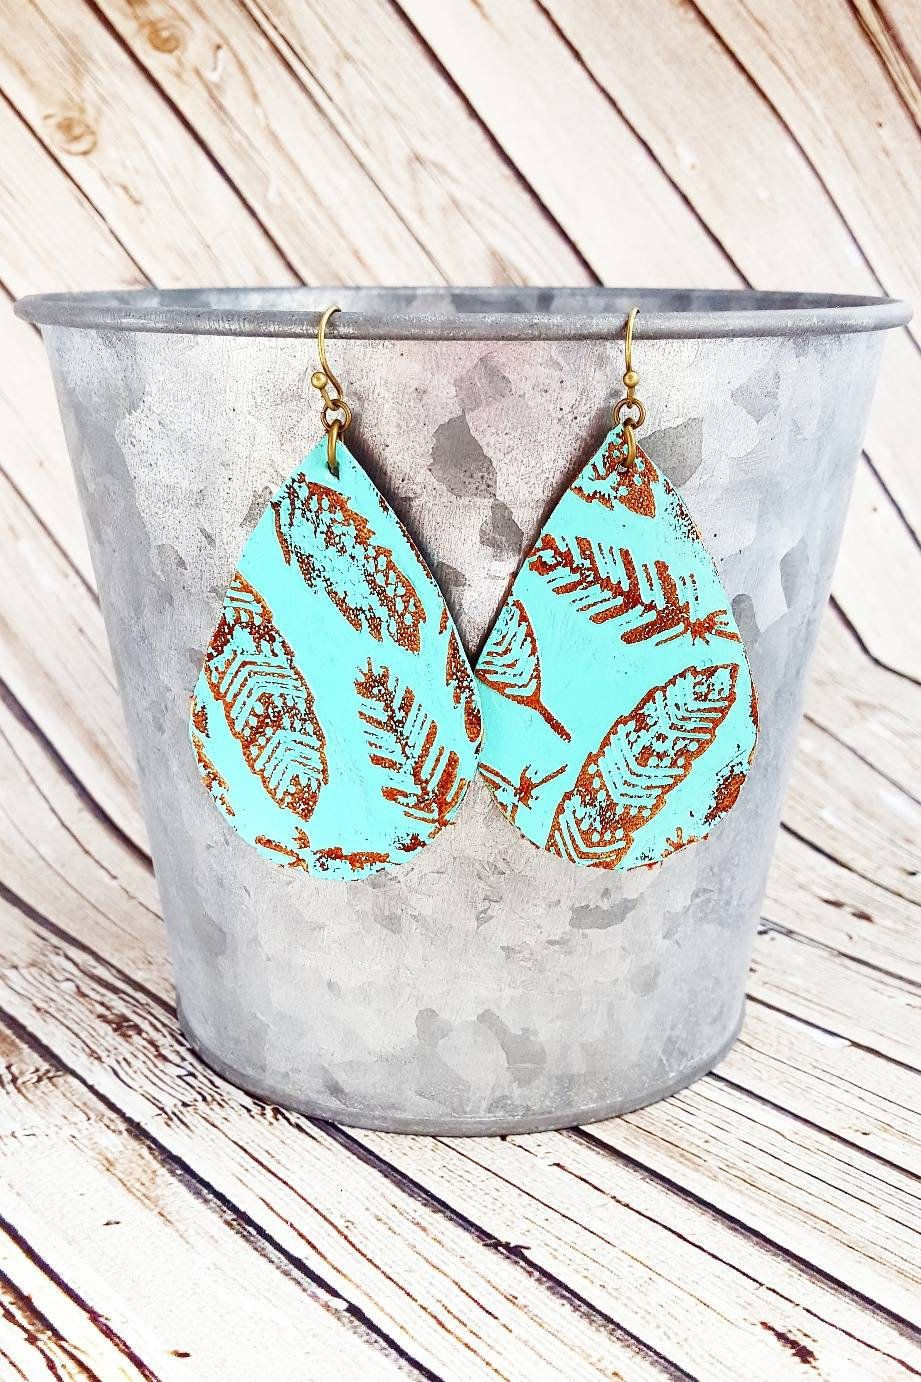 Round Leather Earrings Hand Painted Leather Earrings Leather Dangles Turquoise Leather Earrings Distressed Leather Earrings